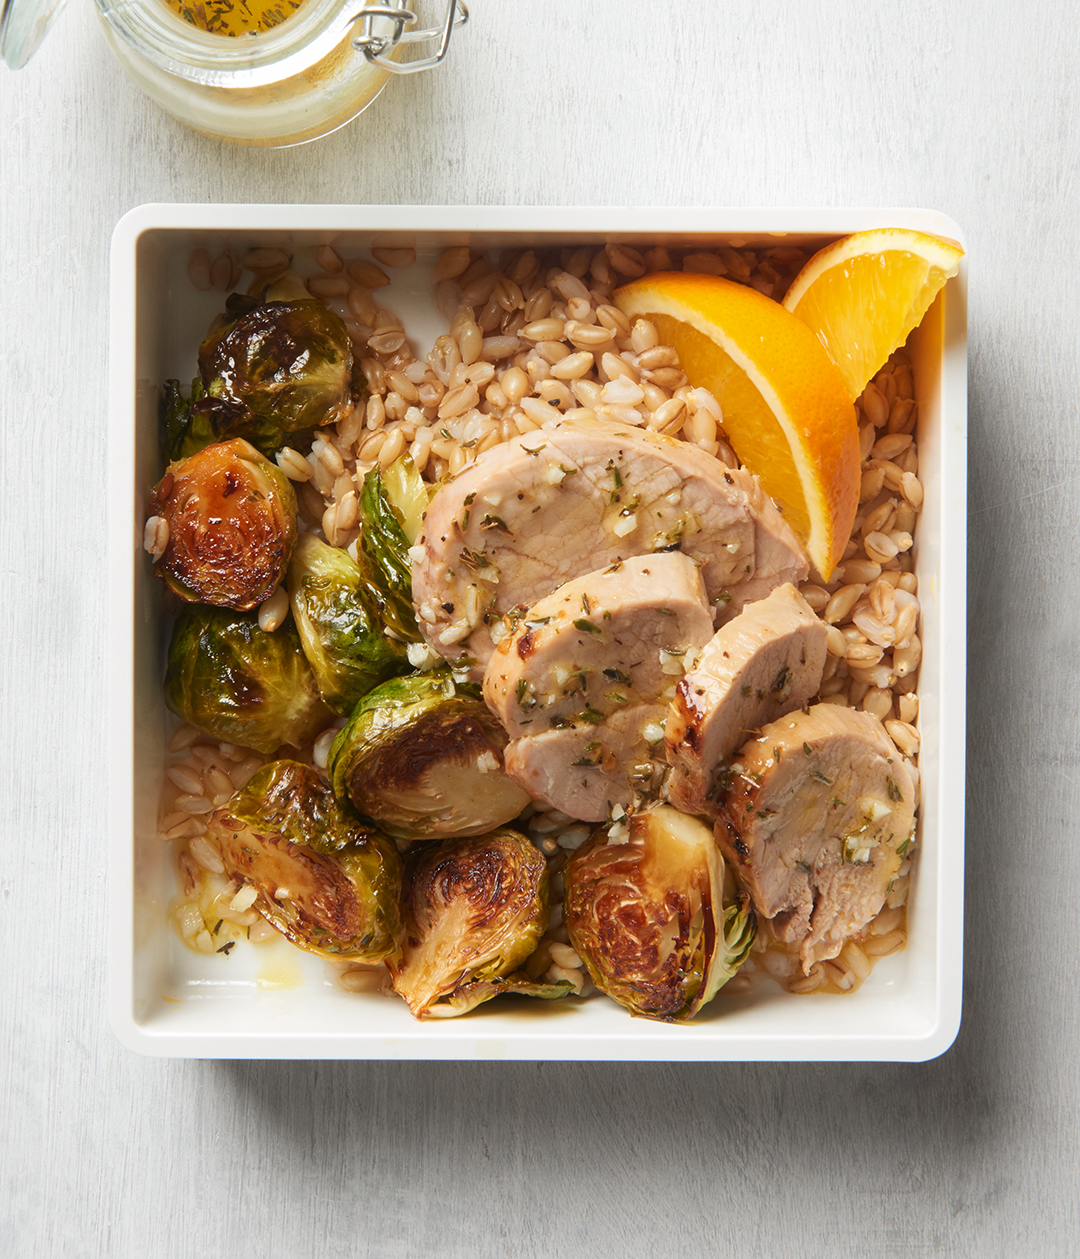 Pork, Brussels Sprouts, and Barley Bowls with orange slices